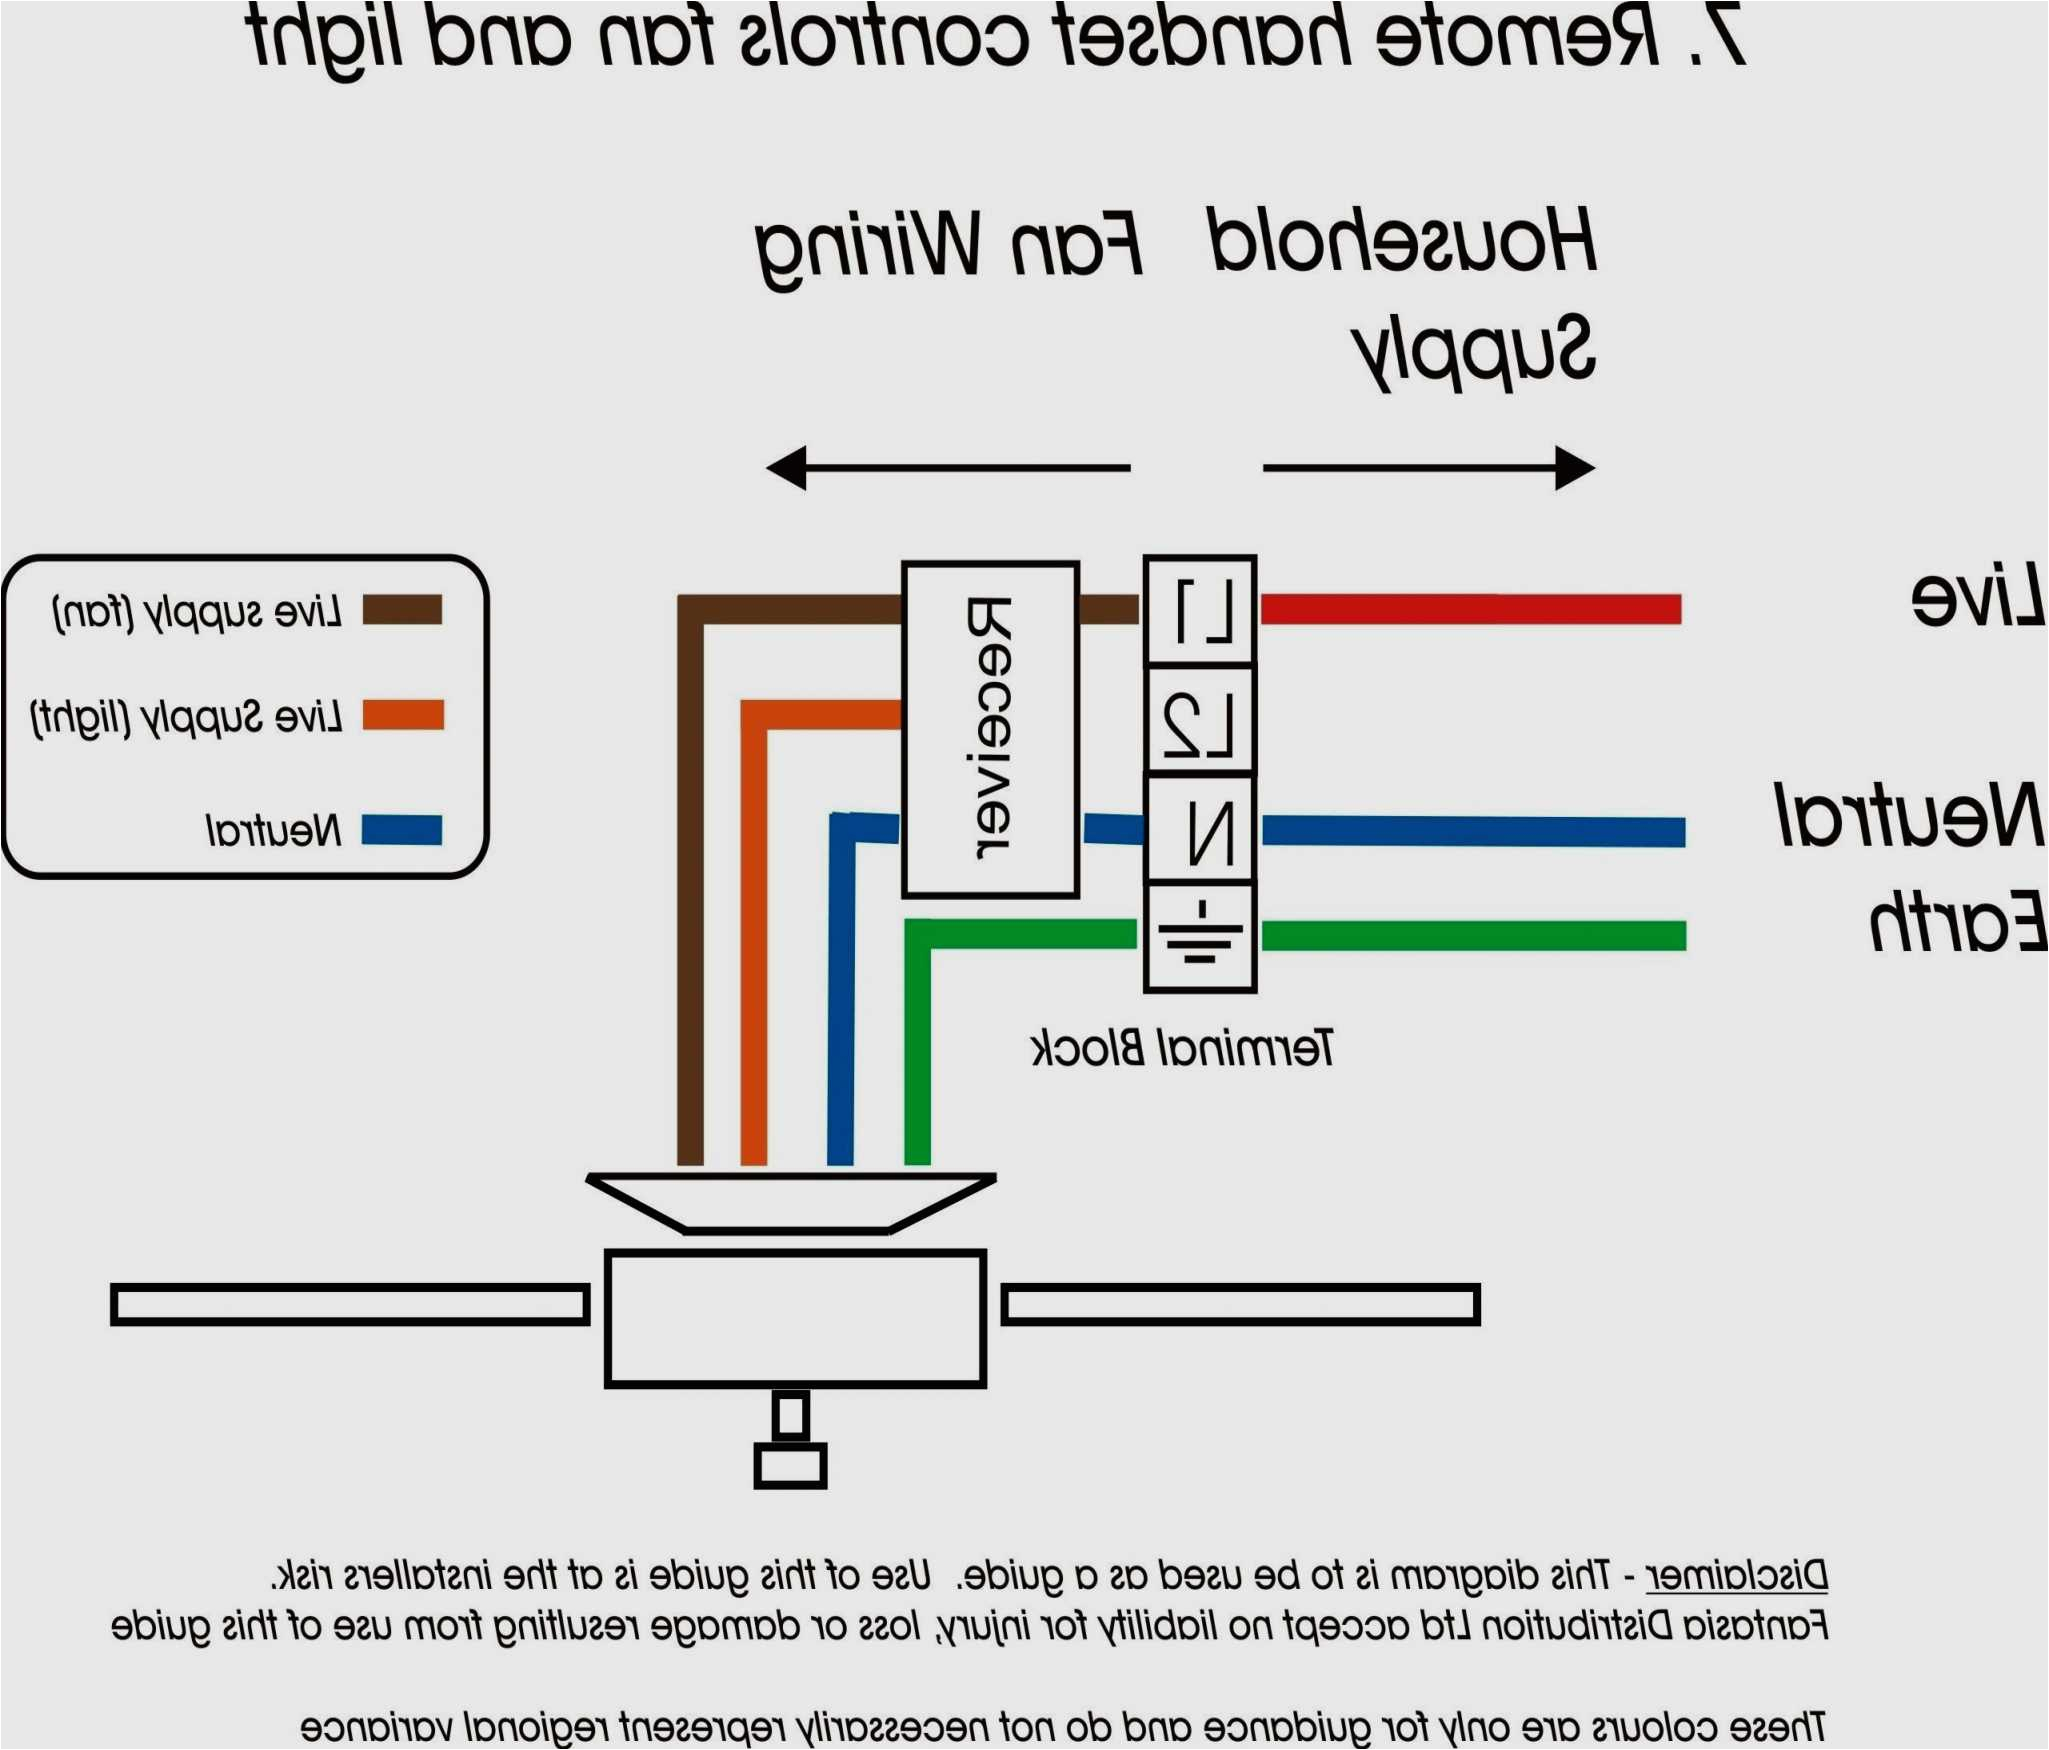 cooper 3 way switch wiring diagram diagram another site for australian wires but it39s for wiring of cooper 3 way switch wiring diagram jpg